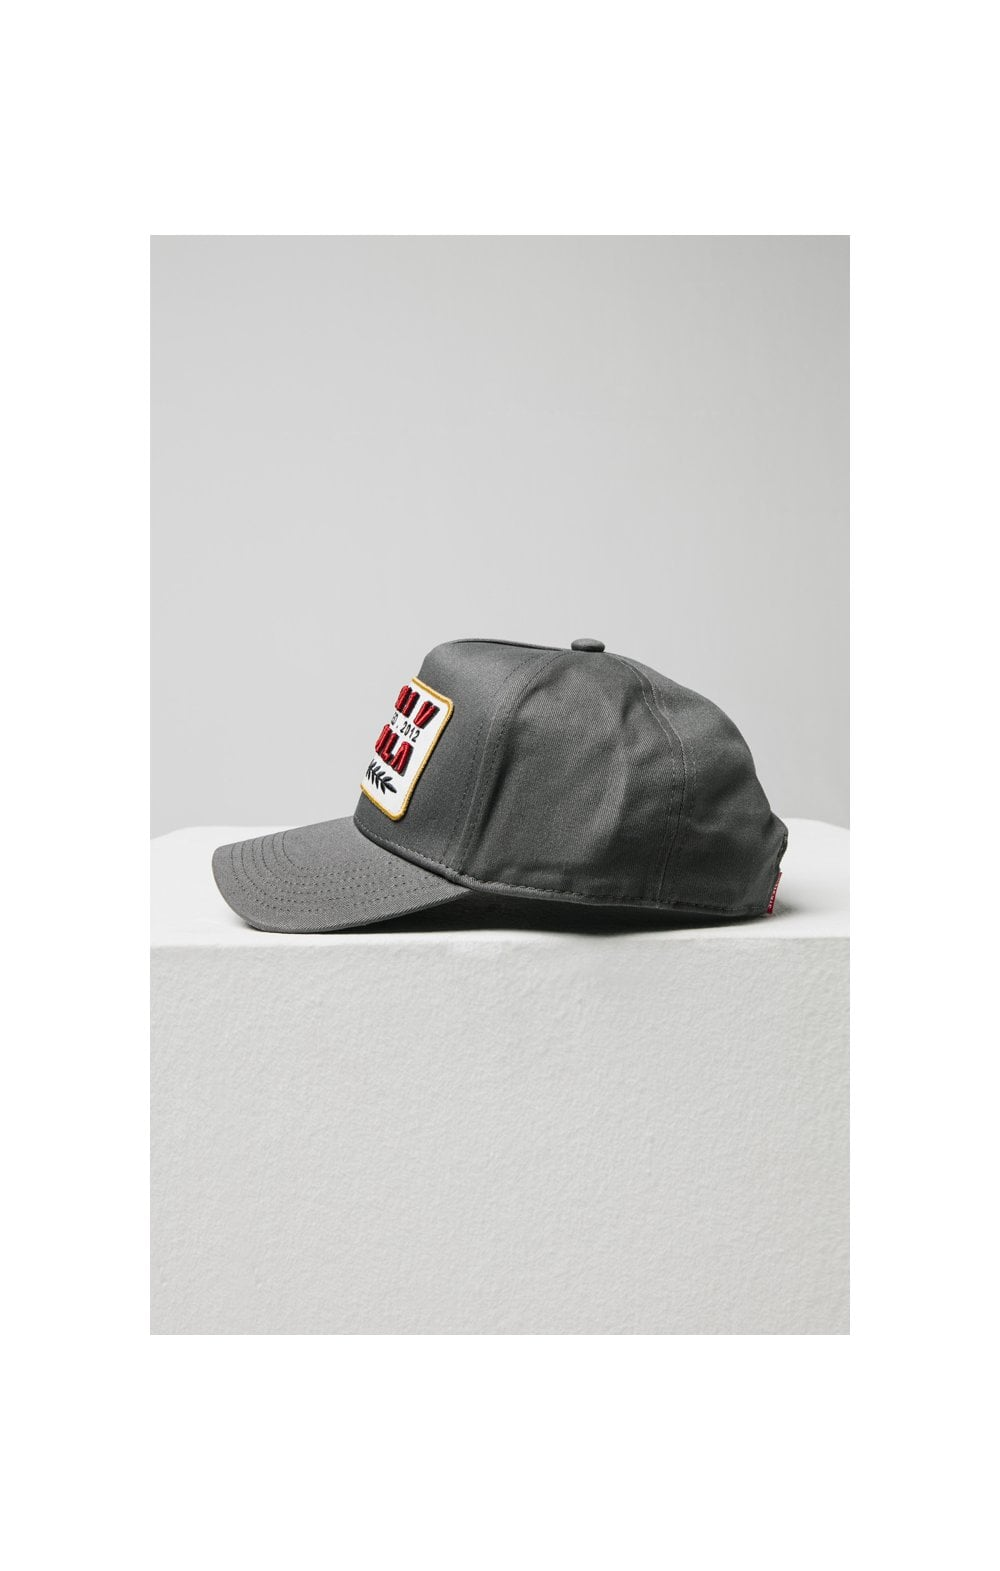 Load image into Gallery viewer, SikSilk Patch Full Trucker - Charcoal (3)